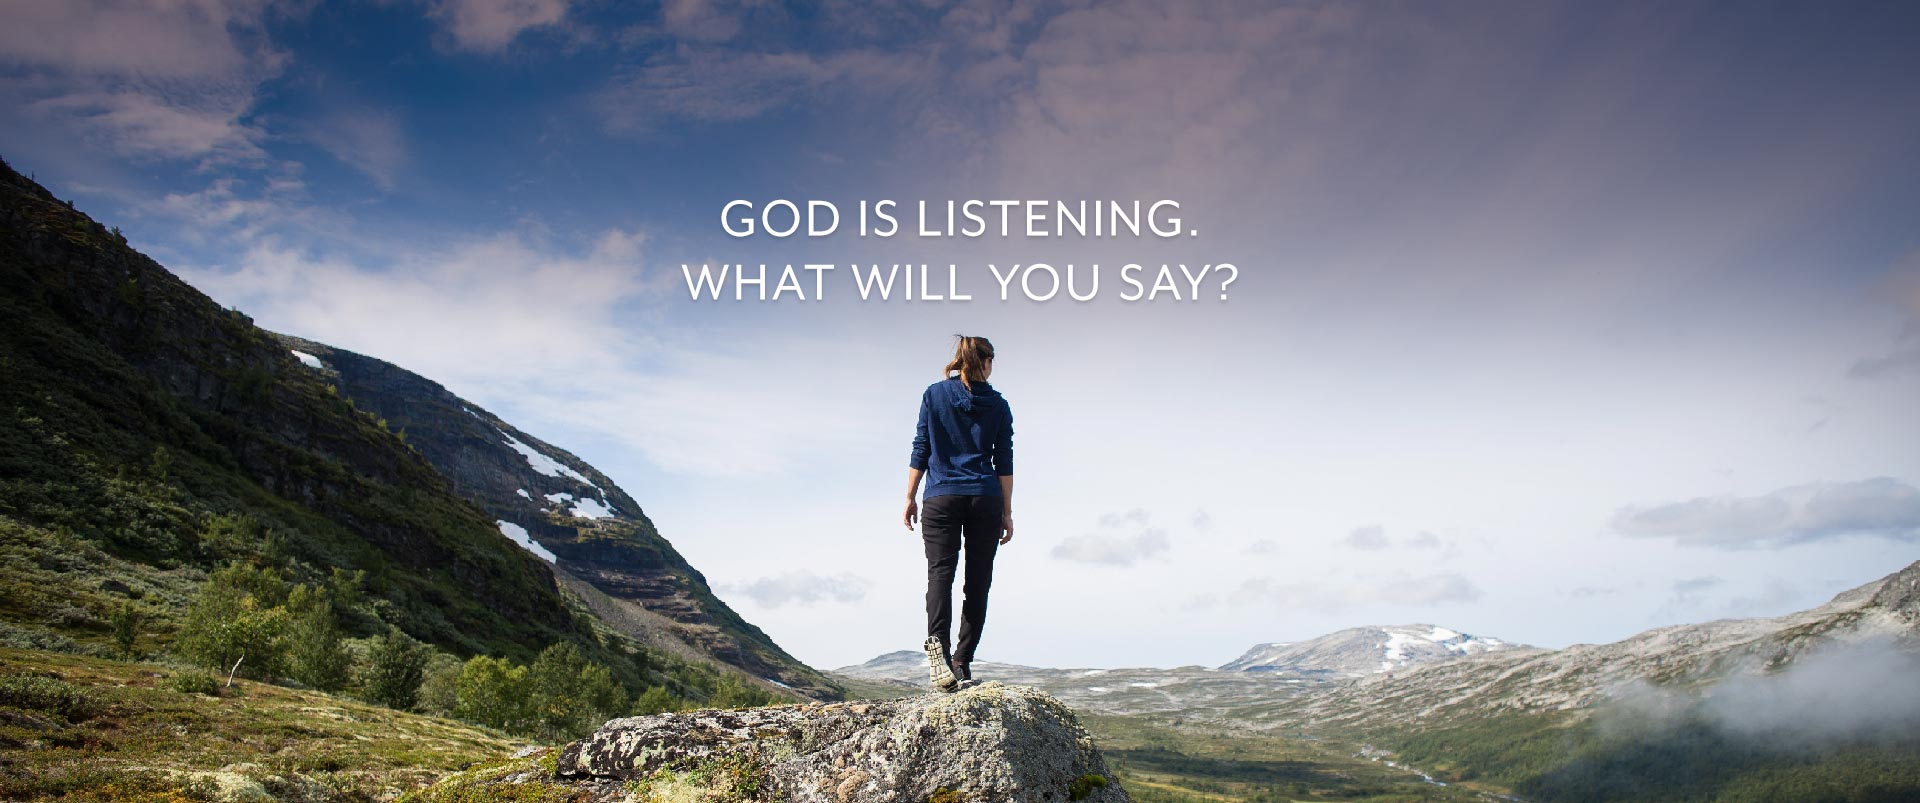 God Is Listening. What Will You Say?